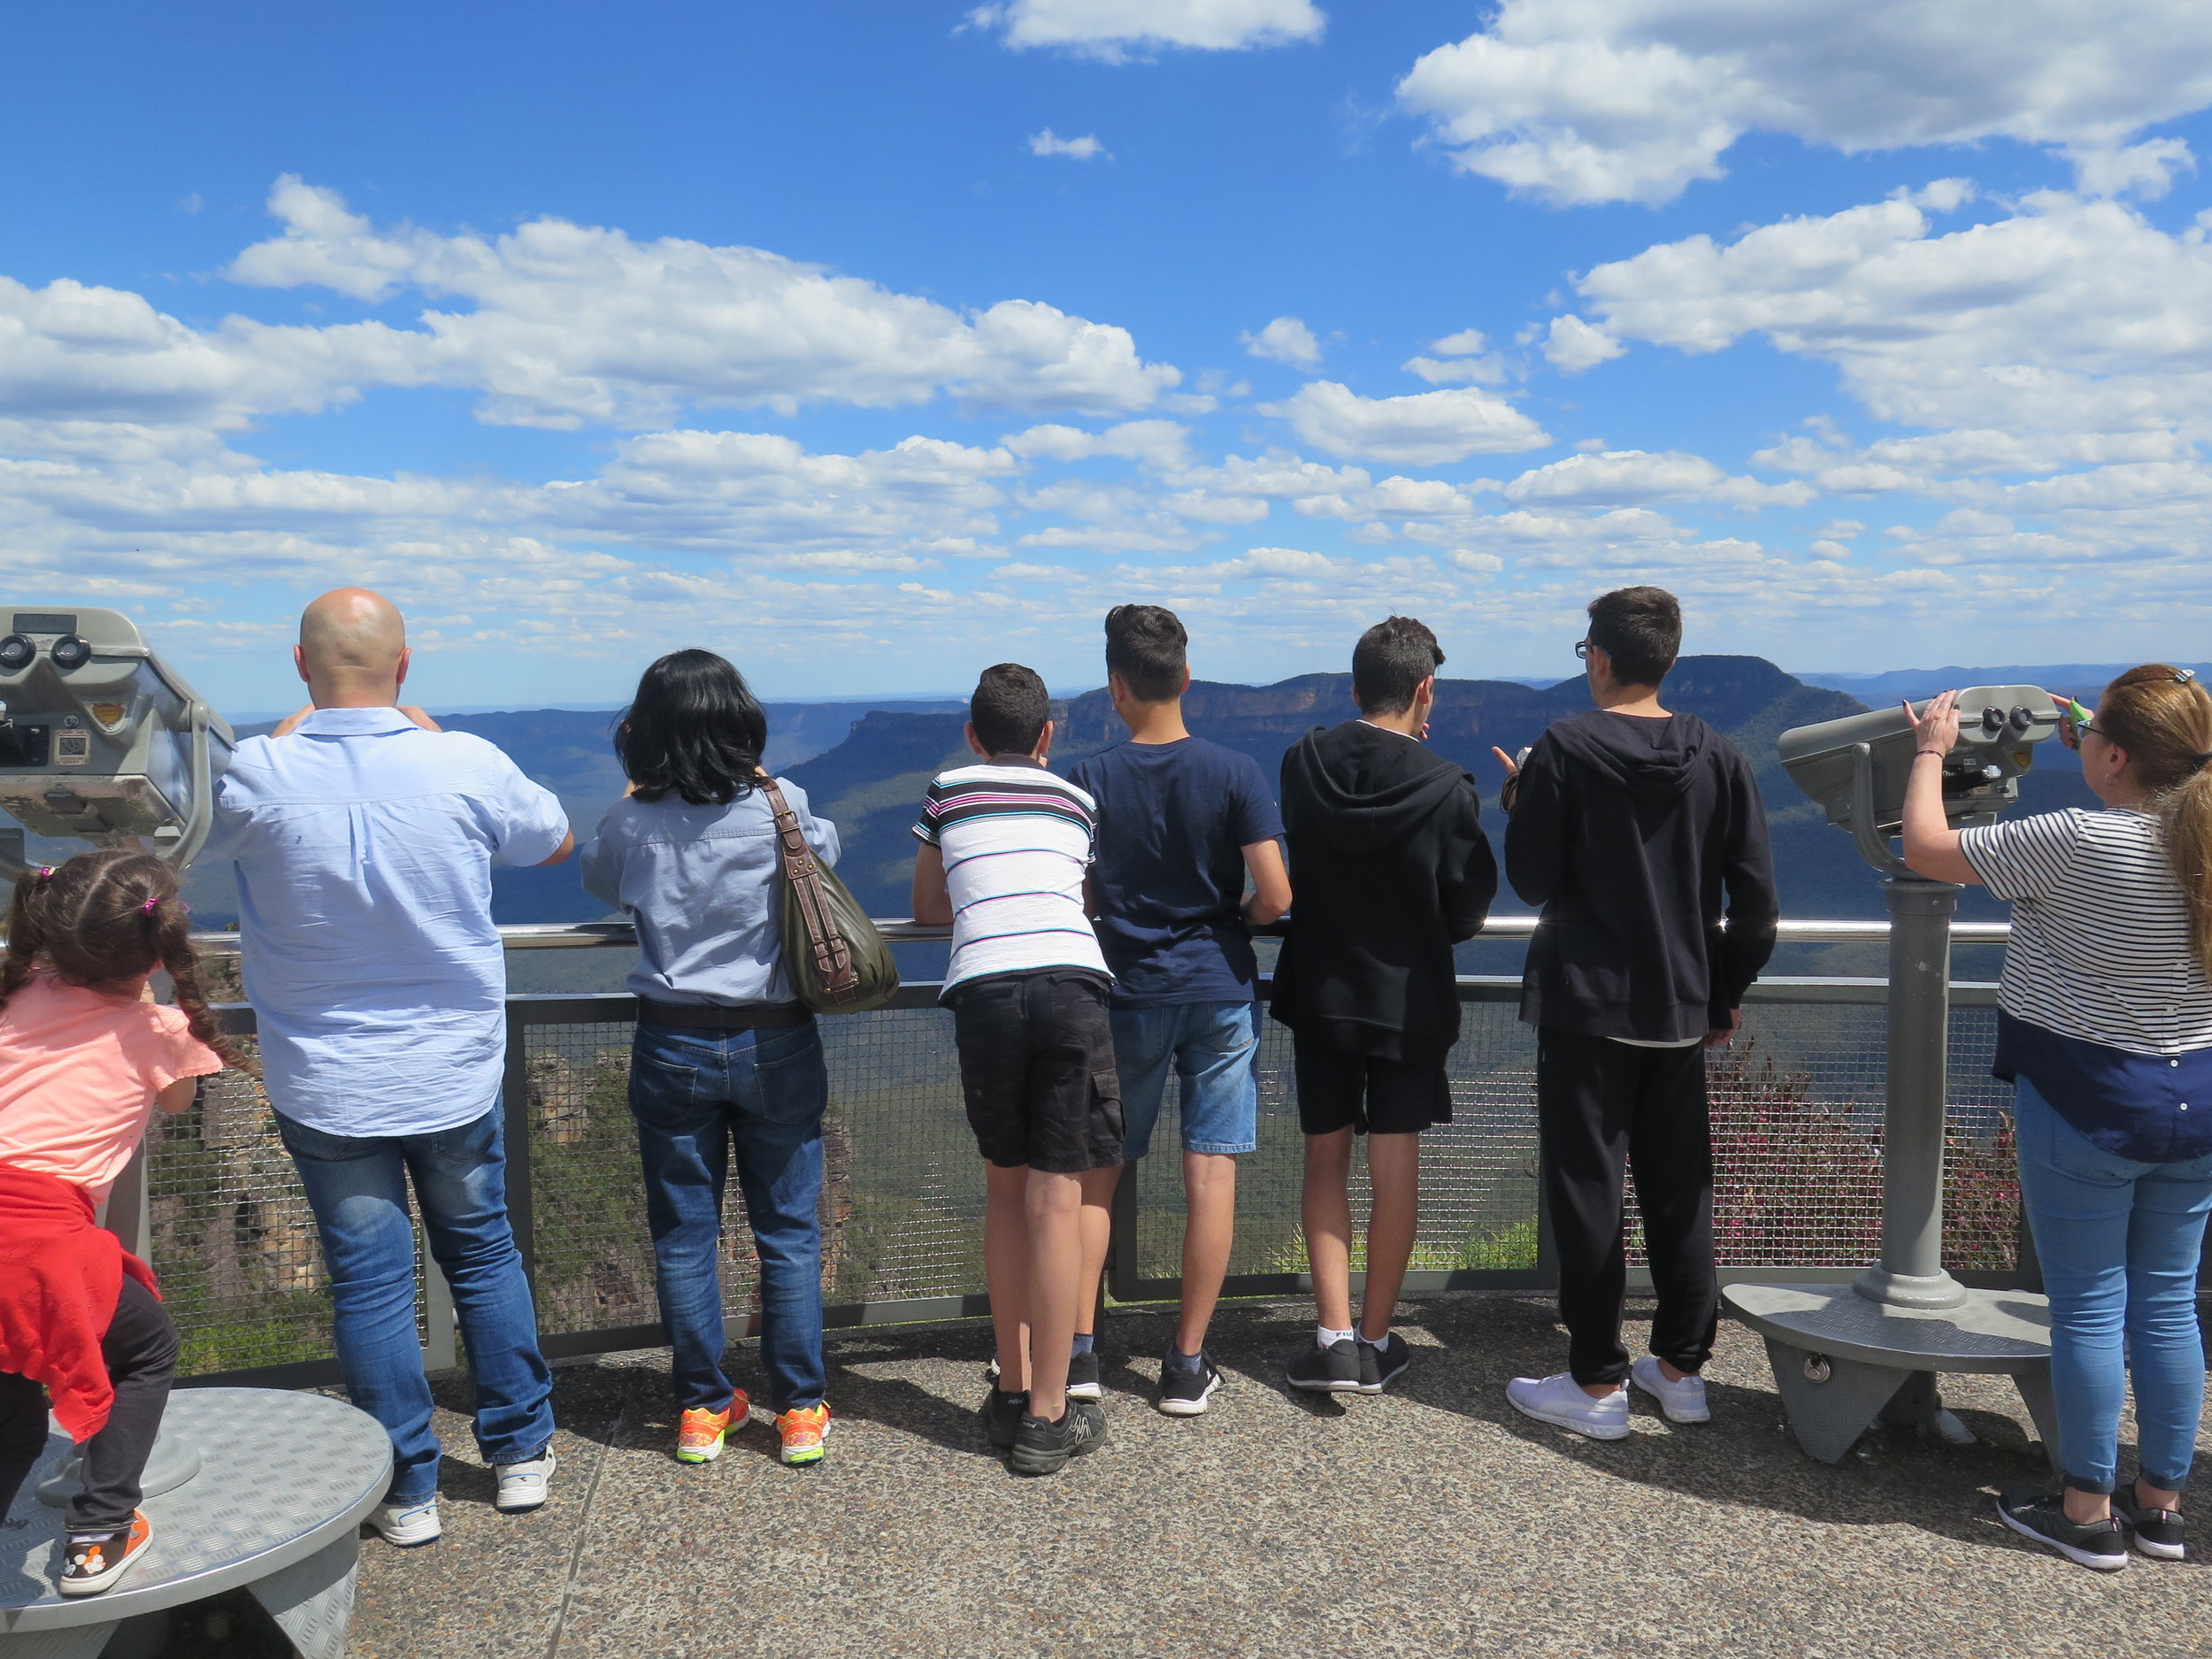 An excursion to the Blue Mountains for refugees, run by St Andrew's Anglican Church, Lakemba